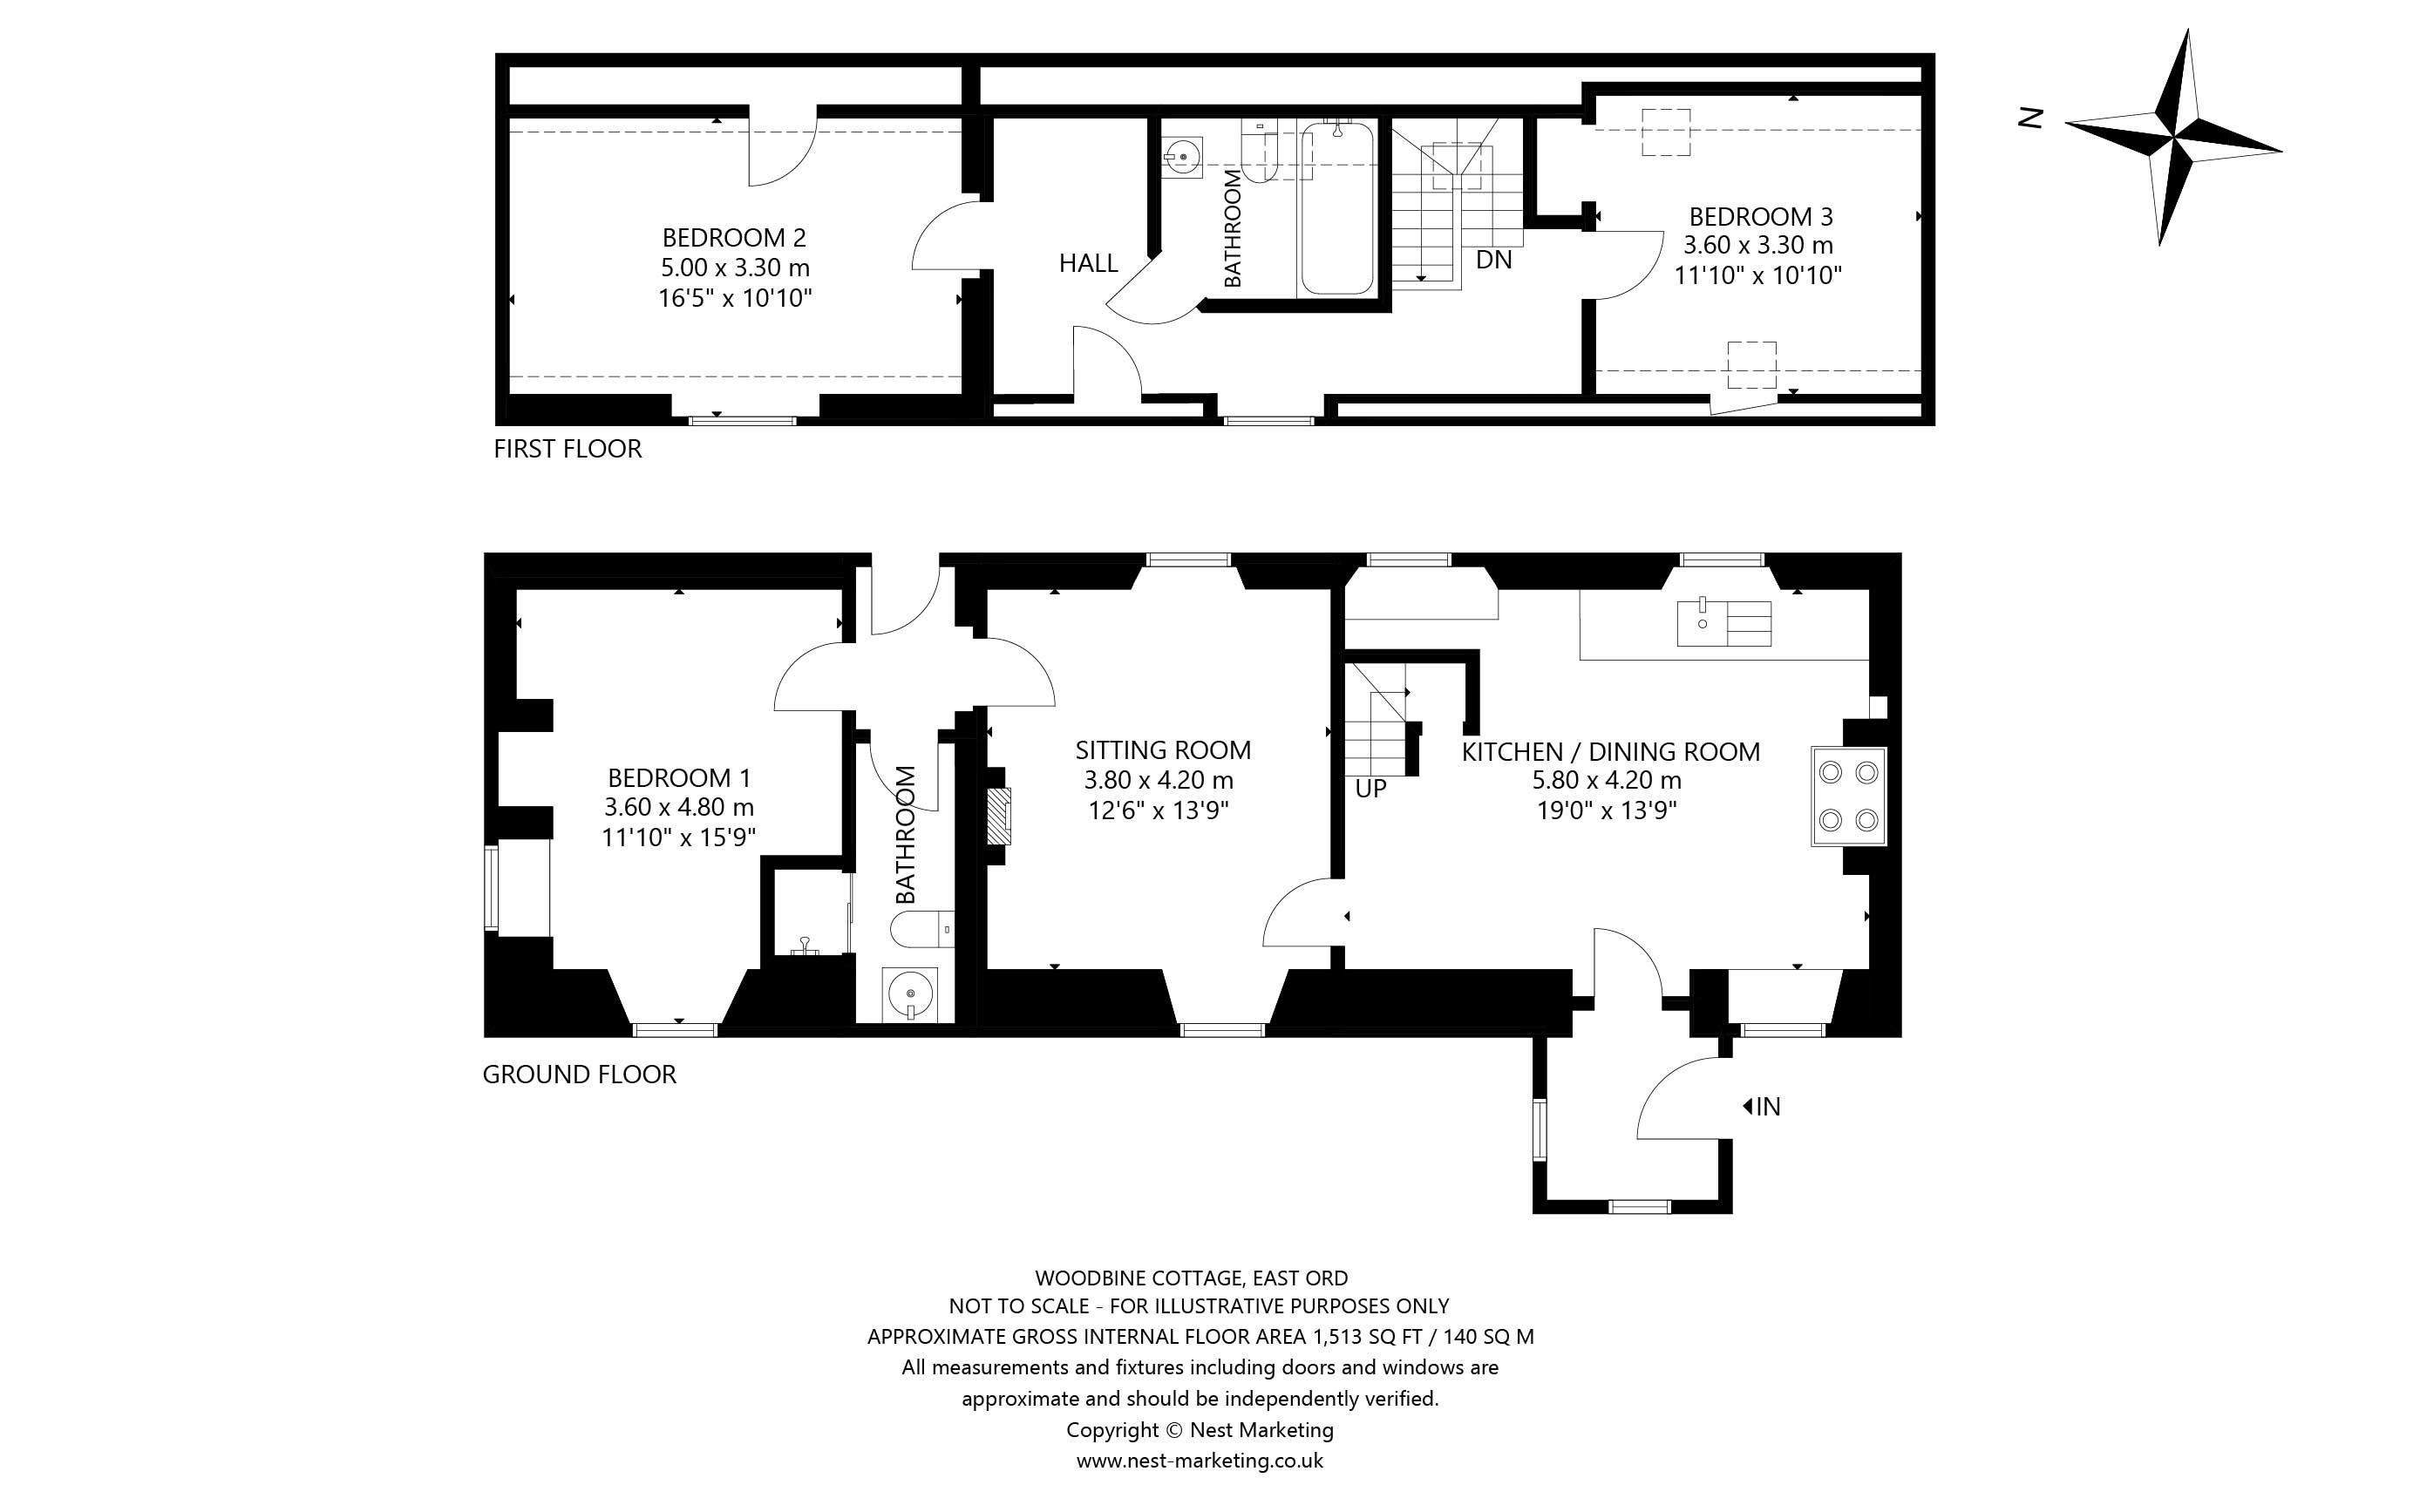 Floorplans for Woodbine Cottage, East Ord, Berwick Upon Tweed, TD15